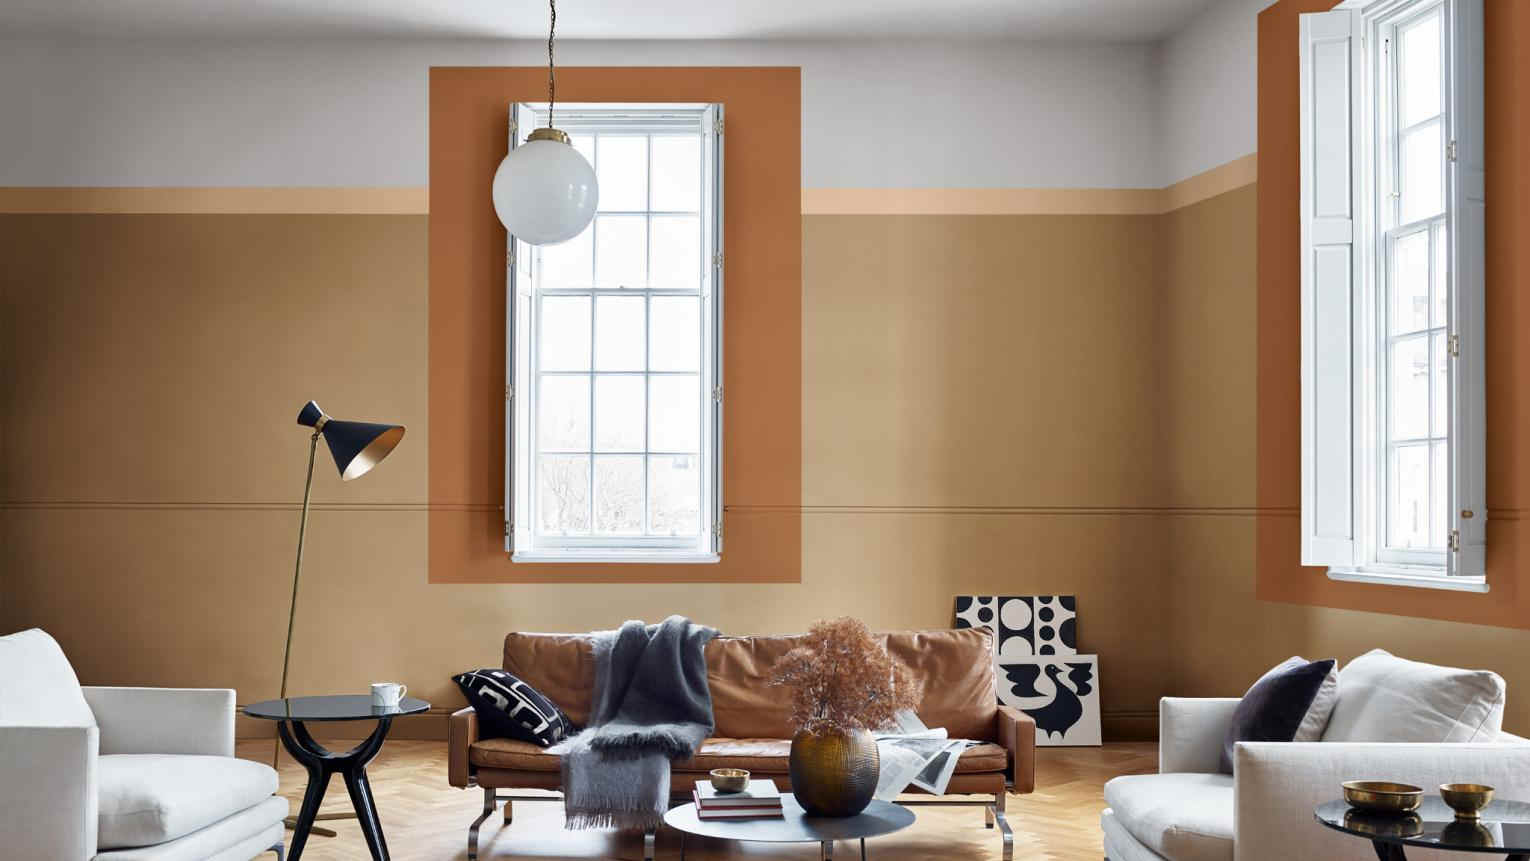 Colour trends color of the year 2019 for interiors by - 2019 home color trends ...